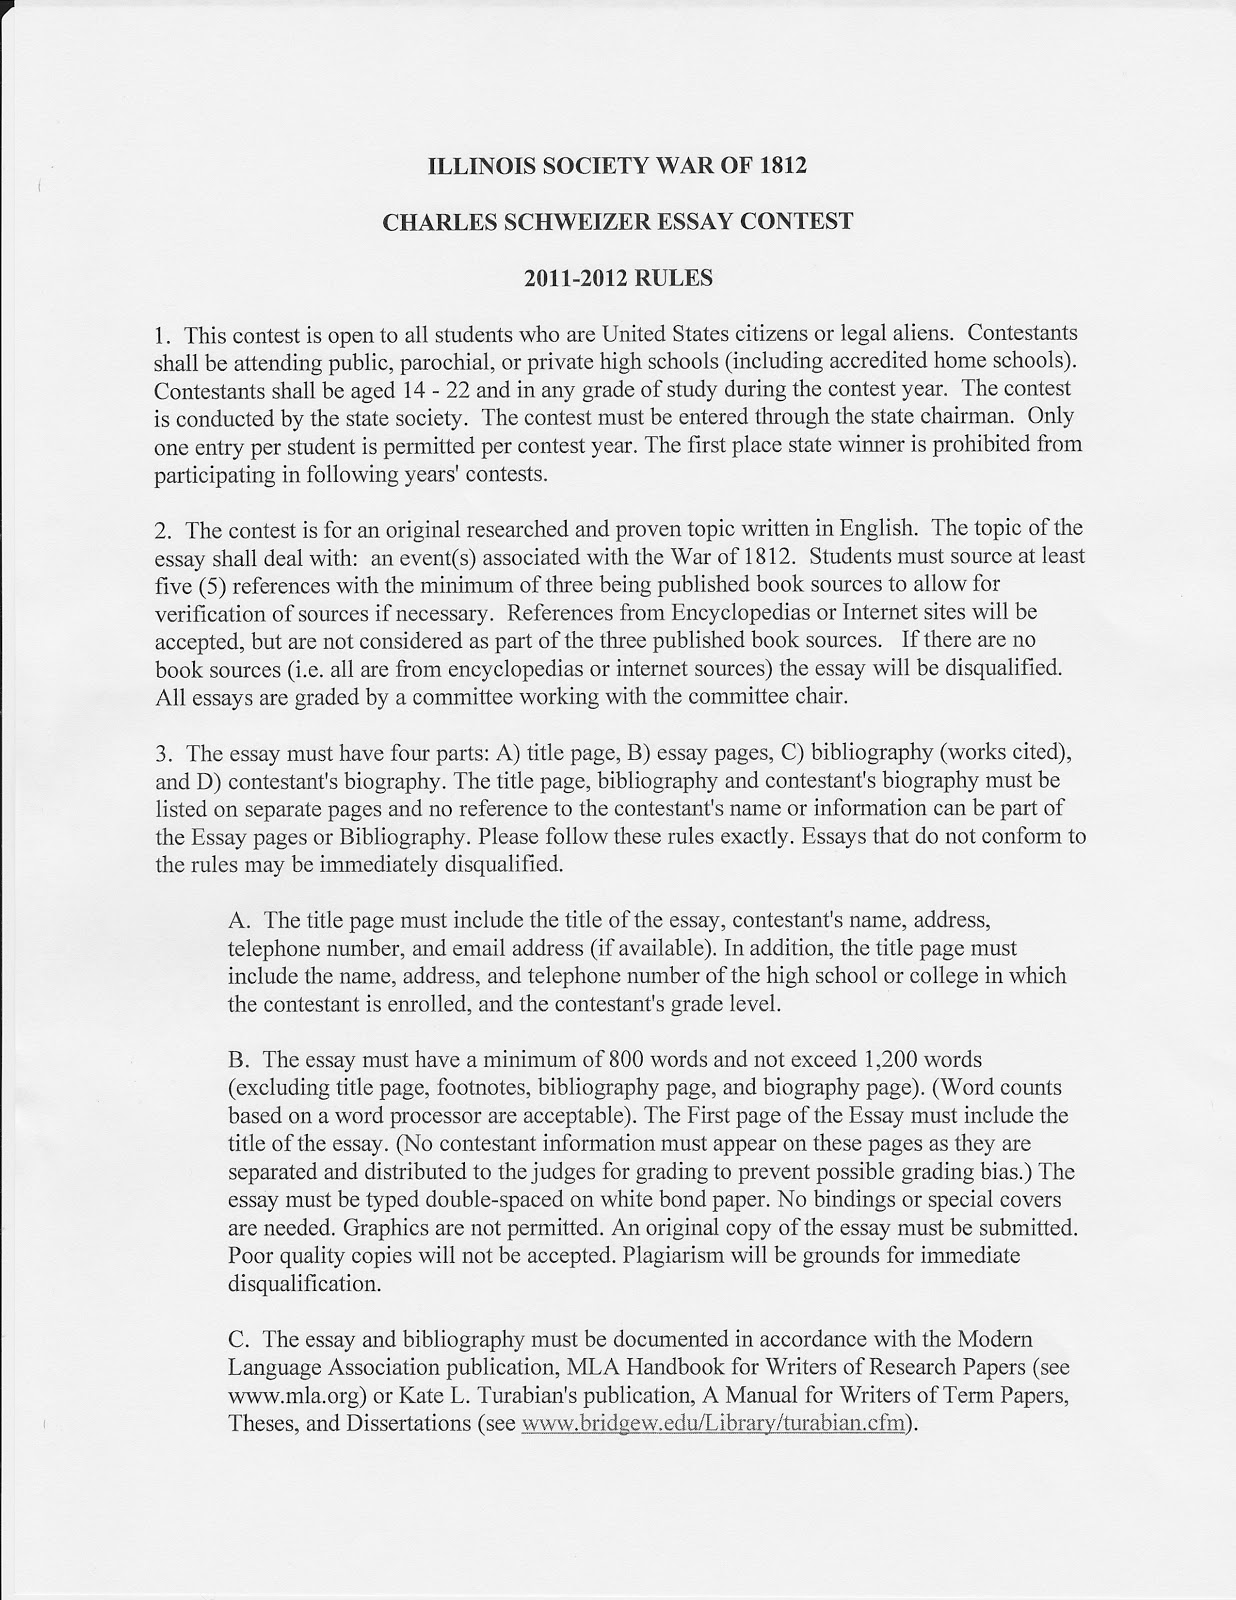 tazewell county museum  the illinois society war of 1812 will be having a charles schweizer essay contest and here are the 2011 2012 rules